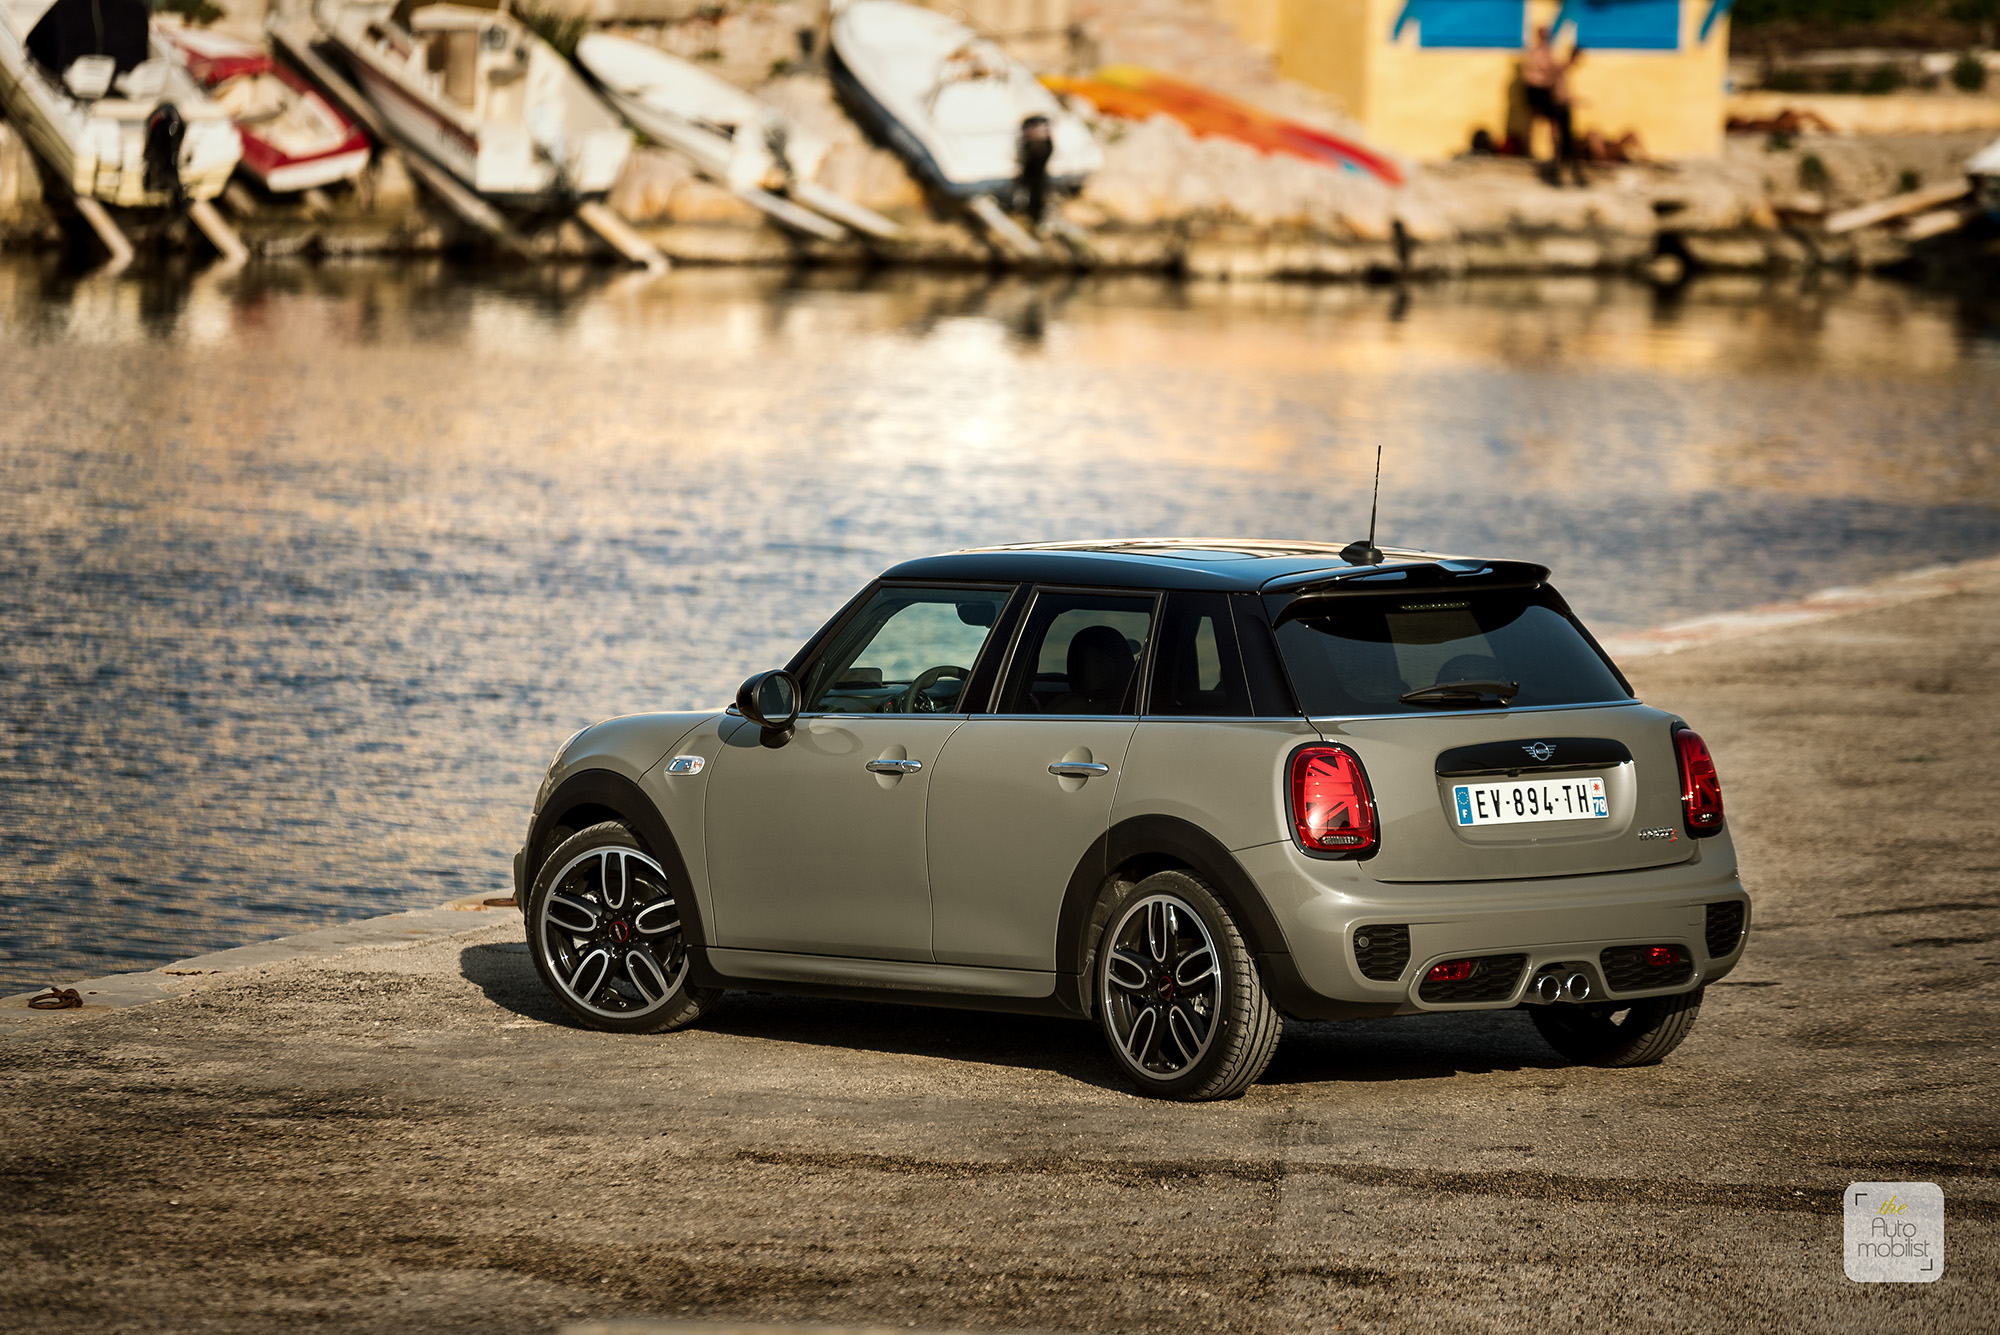 essai mini cooper s 192 ch restyl e hatch 5 portes pourquoi changer the automobilist. Black Bedroom Furniture Sets. Home Design Ideas